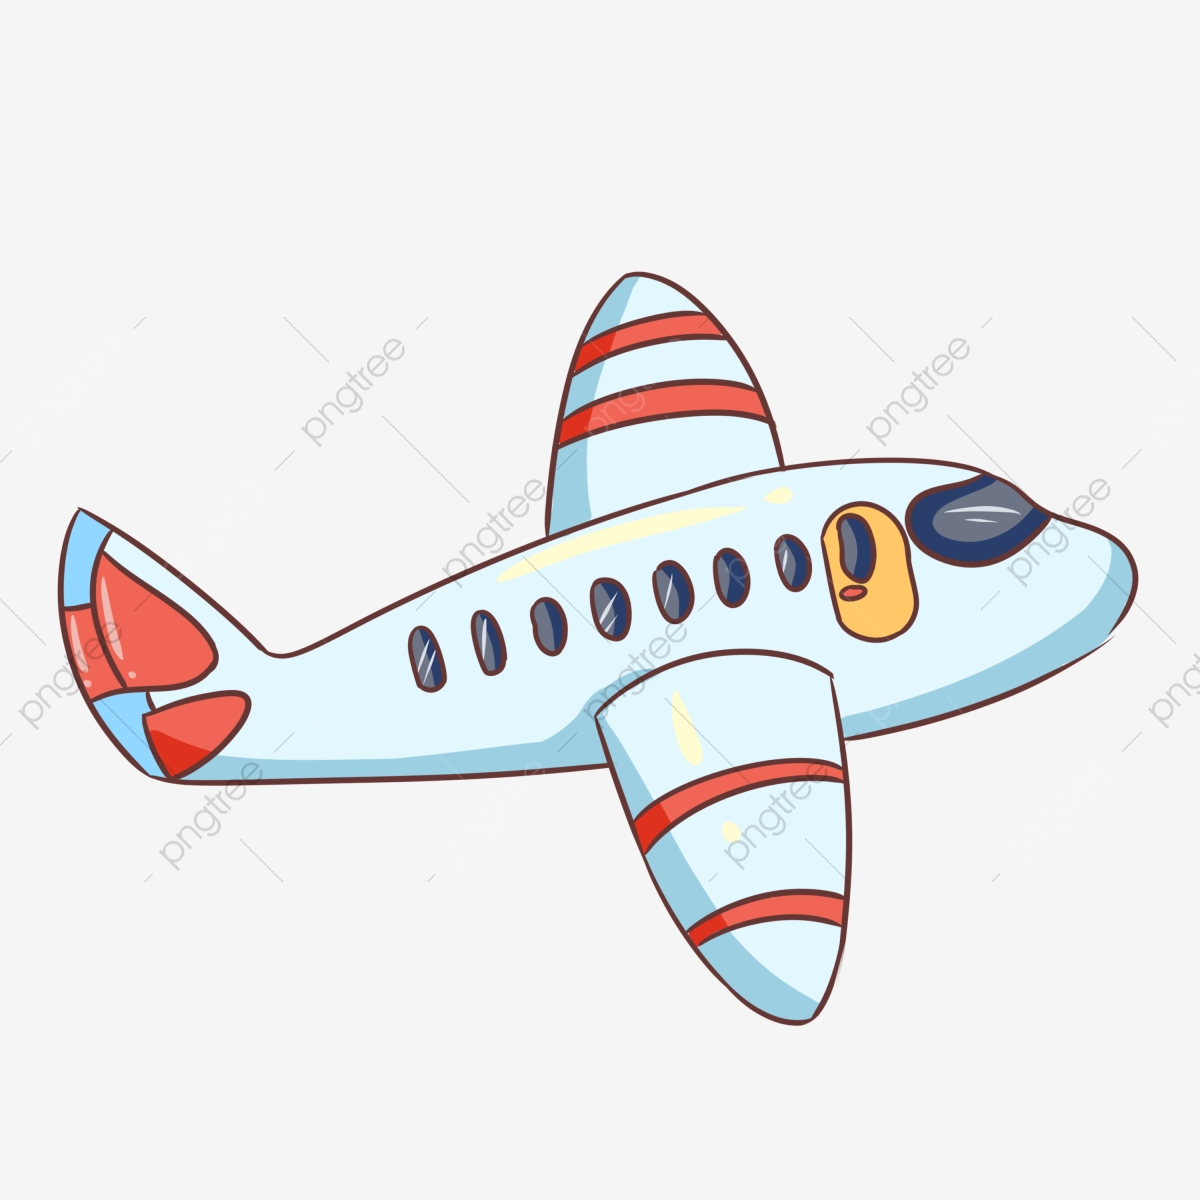 Blue Plane Cartoon Airplane Childrens Toy Airplane Air Plane Toys Flight Fly By Plane Png Transparent Clipart Image And Psd File For Free Download